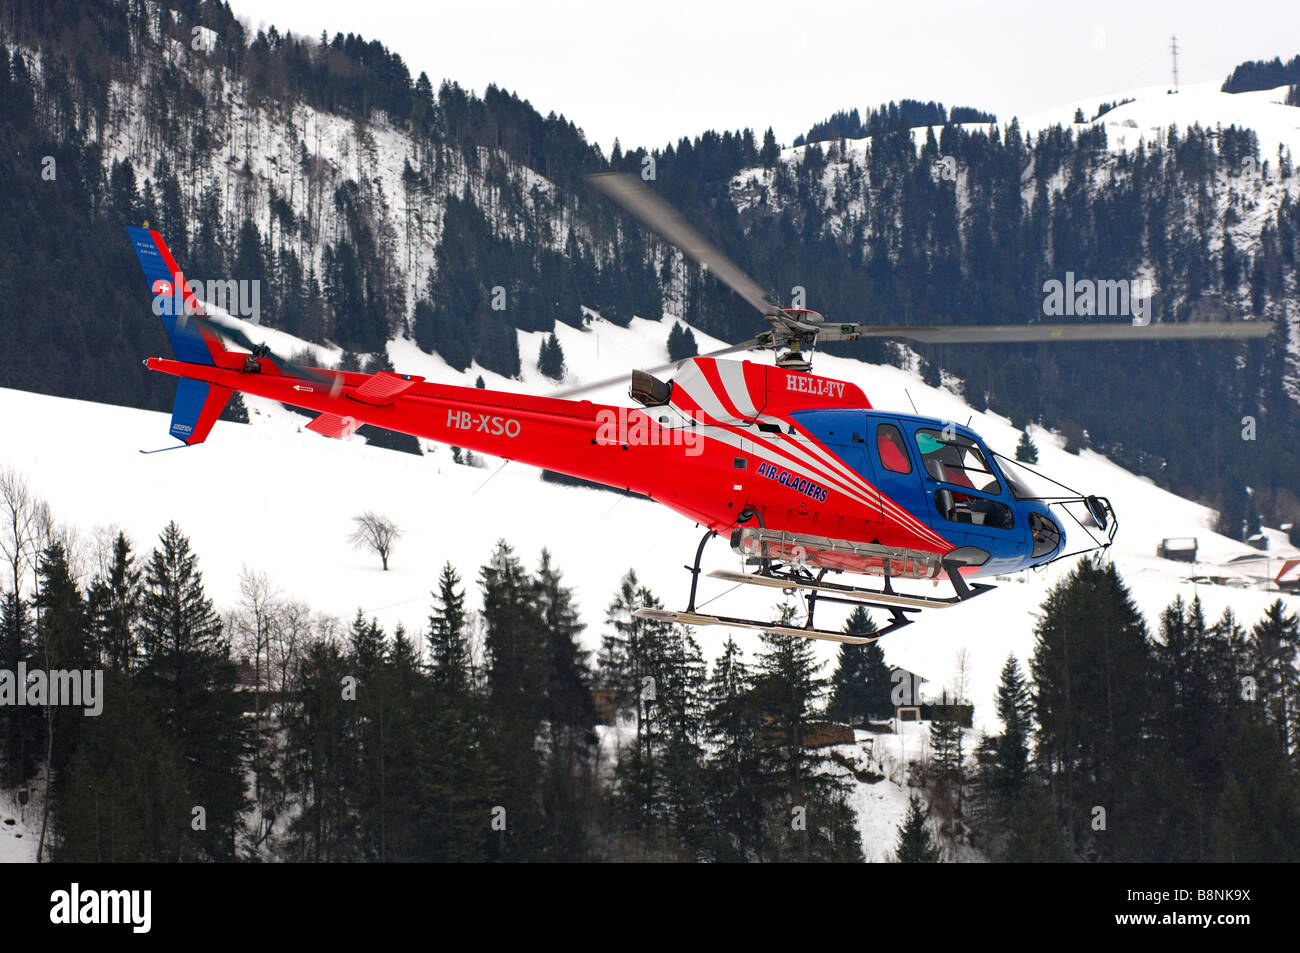 Chopper HB XSO Eurocopter As 350 B2 Ecureuil of Air Glaciers in action in a narrow mountain valley, Switzerland - Stock Image